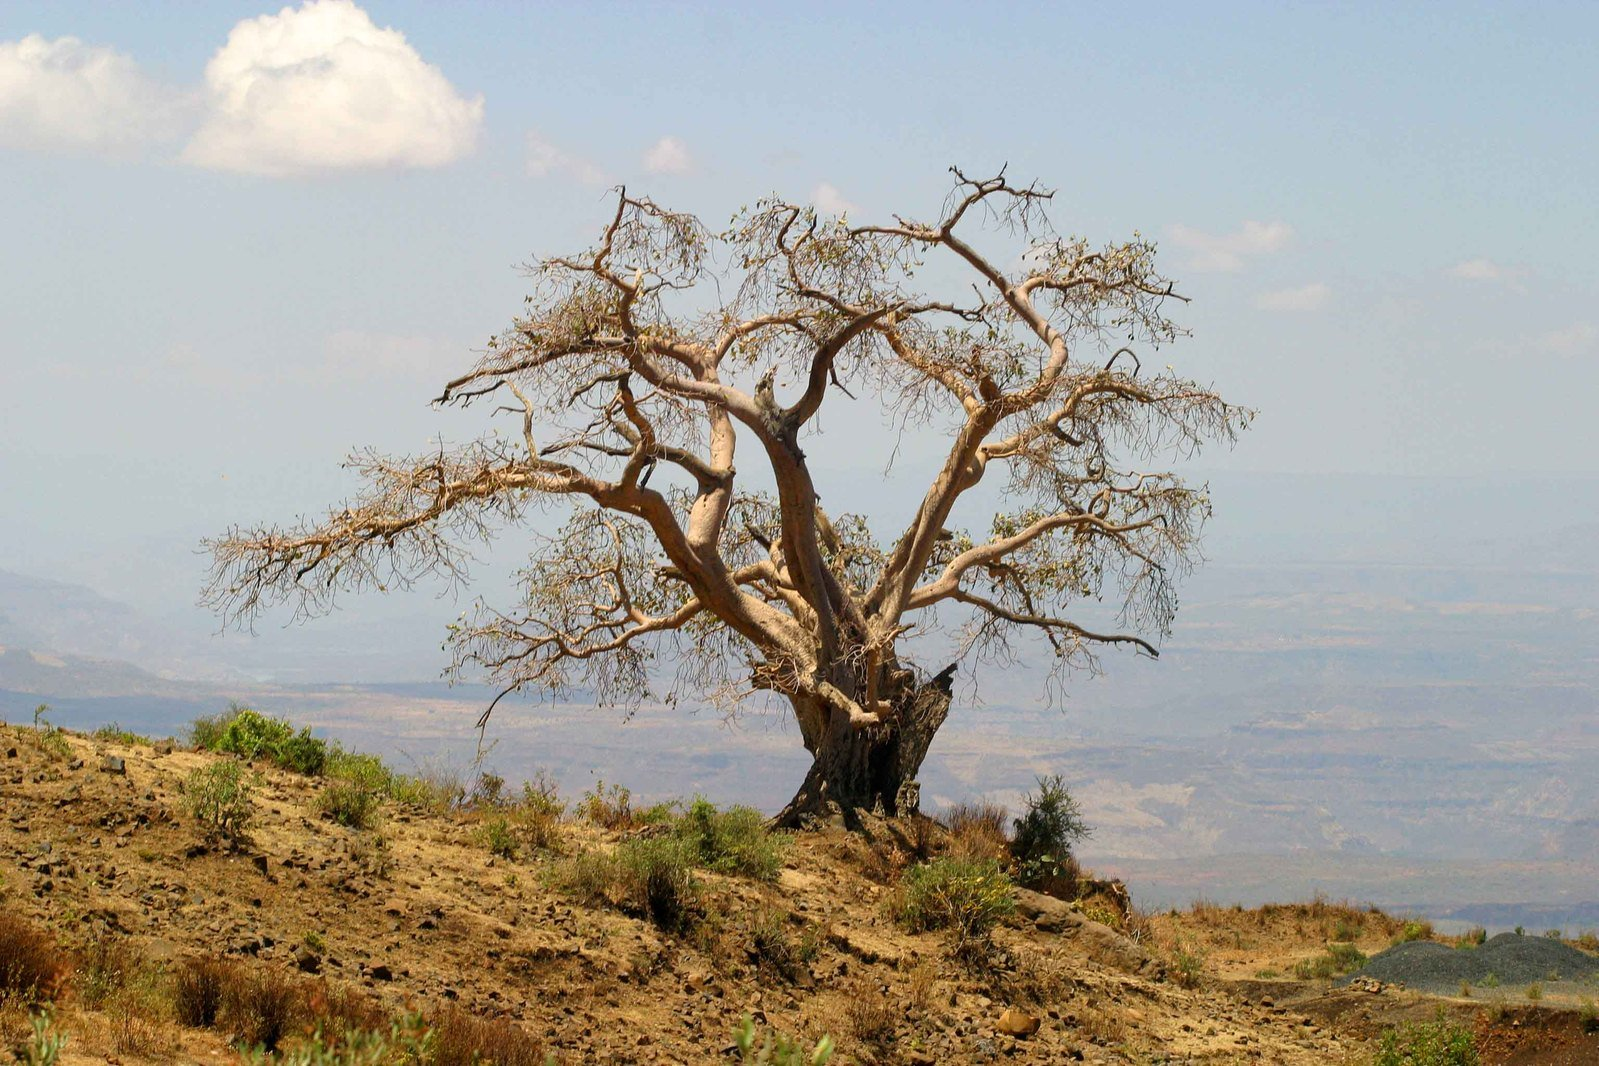 Dead Tree, Namibia, Africa Photograph by Keith Levit